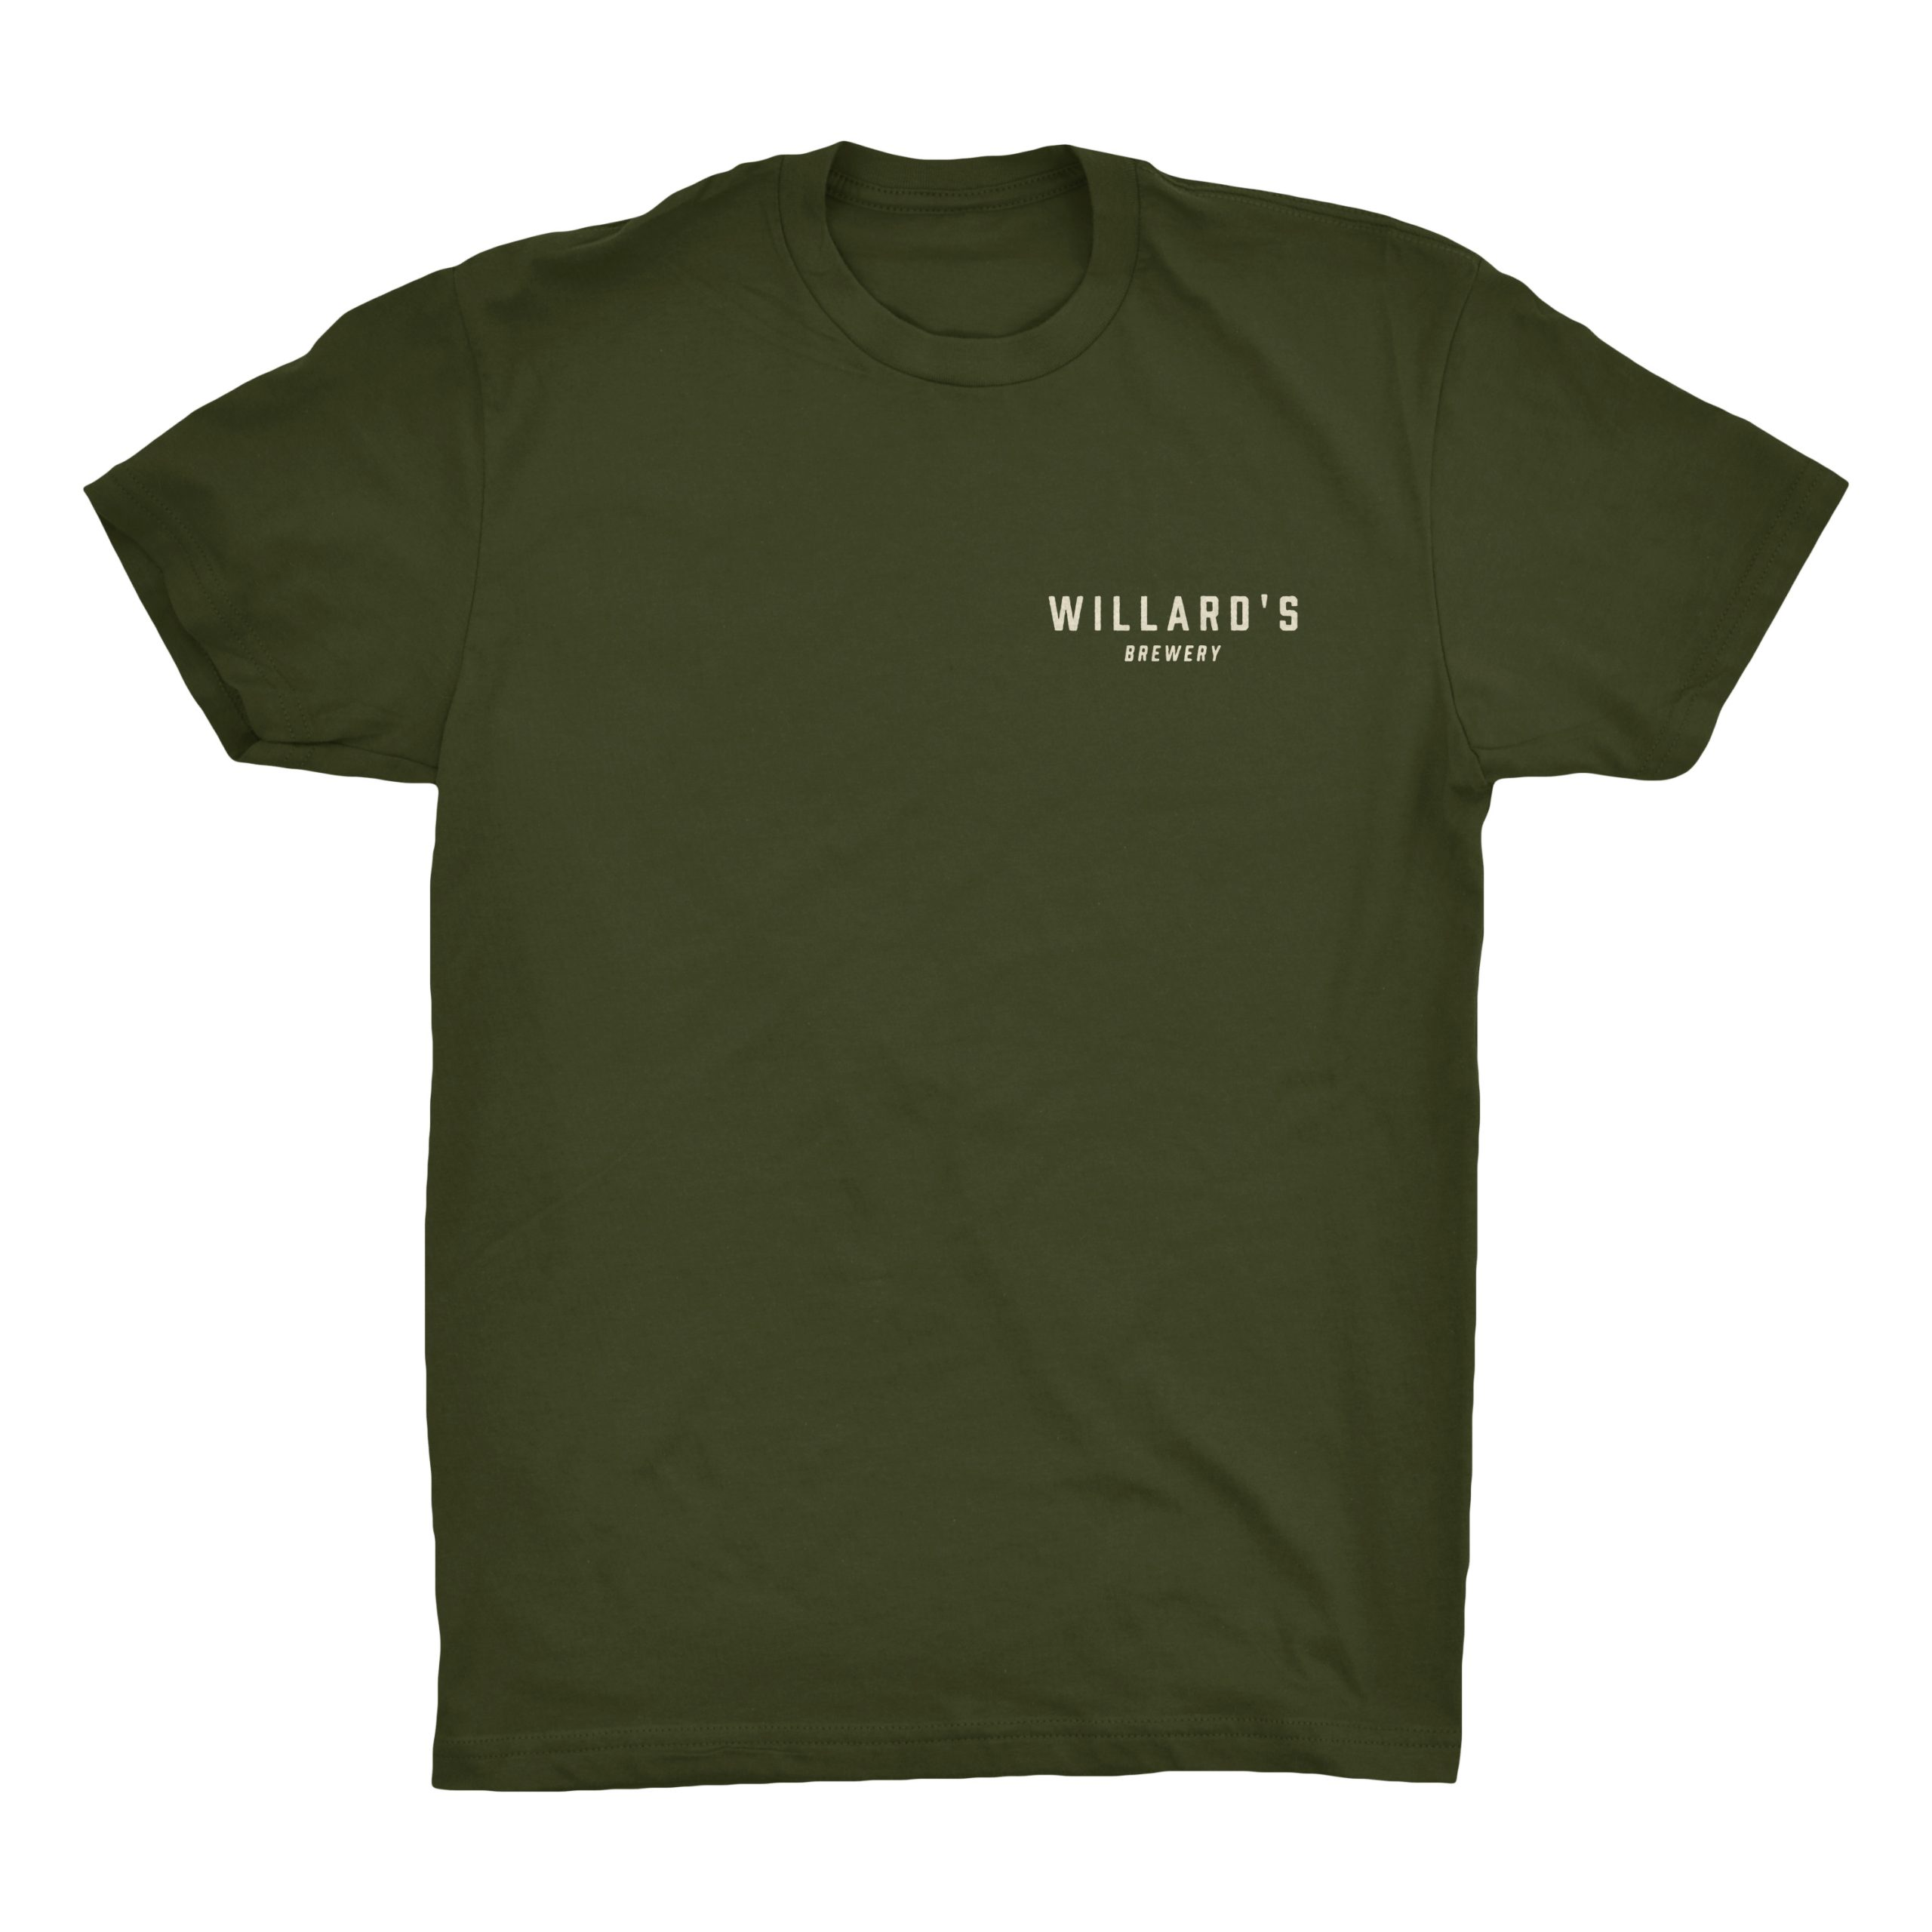 willard's brewery green tshirt